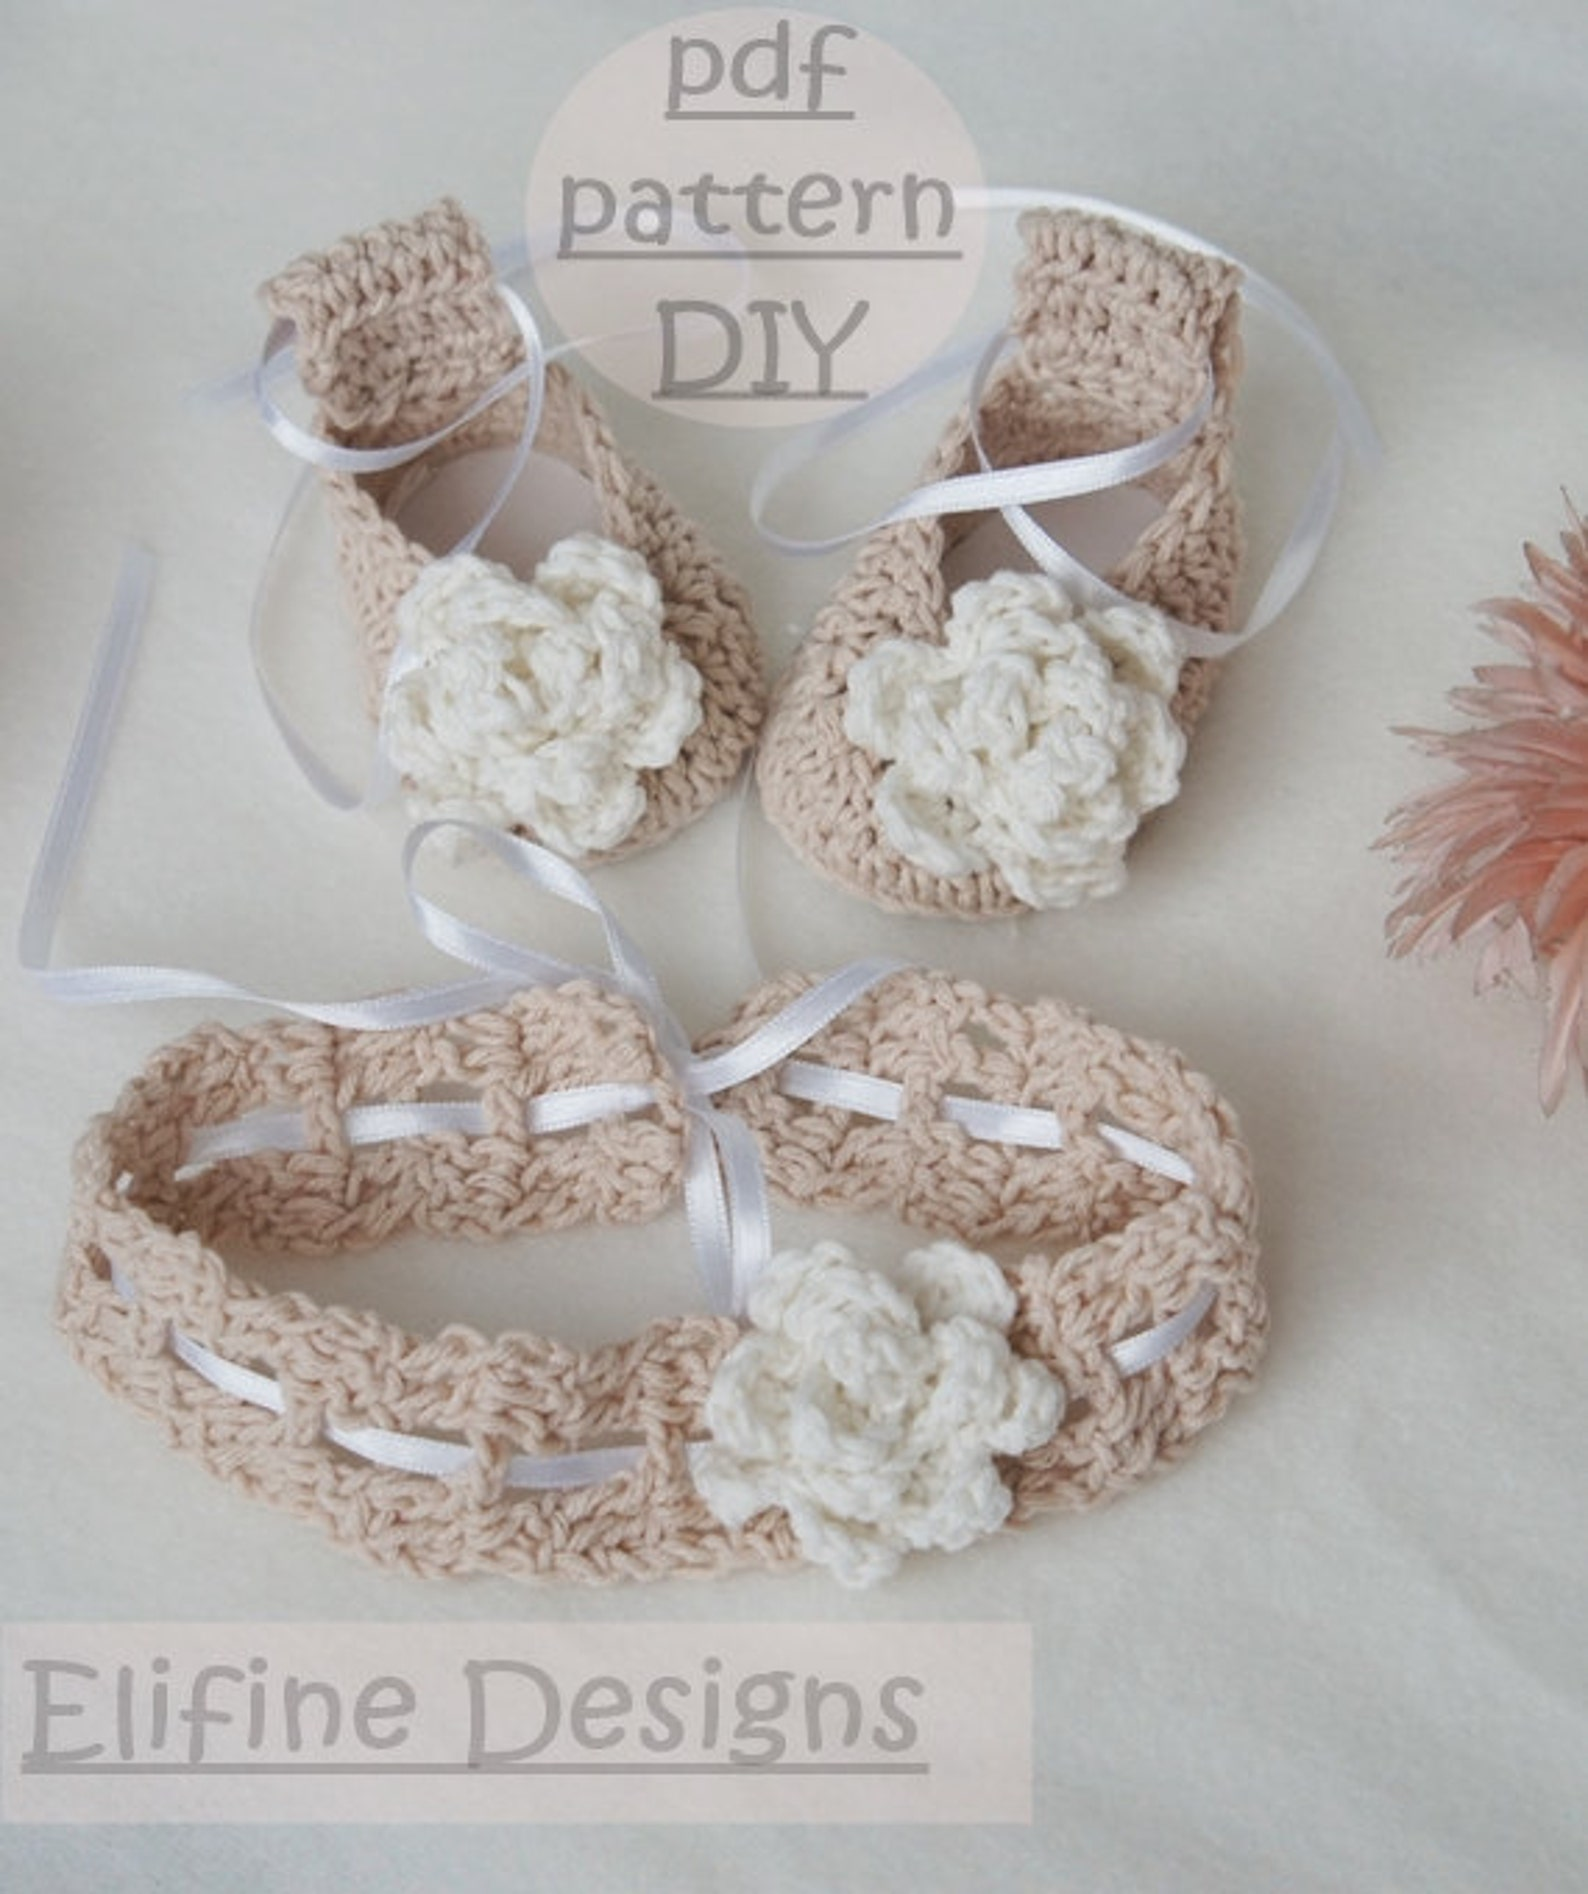 crochet pattern,crochet ballet shoes,crochet headband,crochet booties,baby shower,diy,baby,patterns,crochet for babies,crochet s